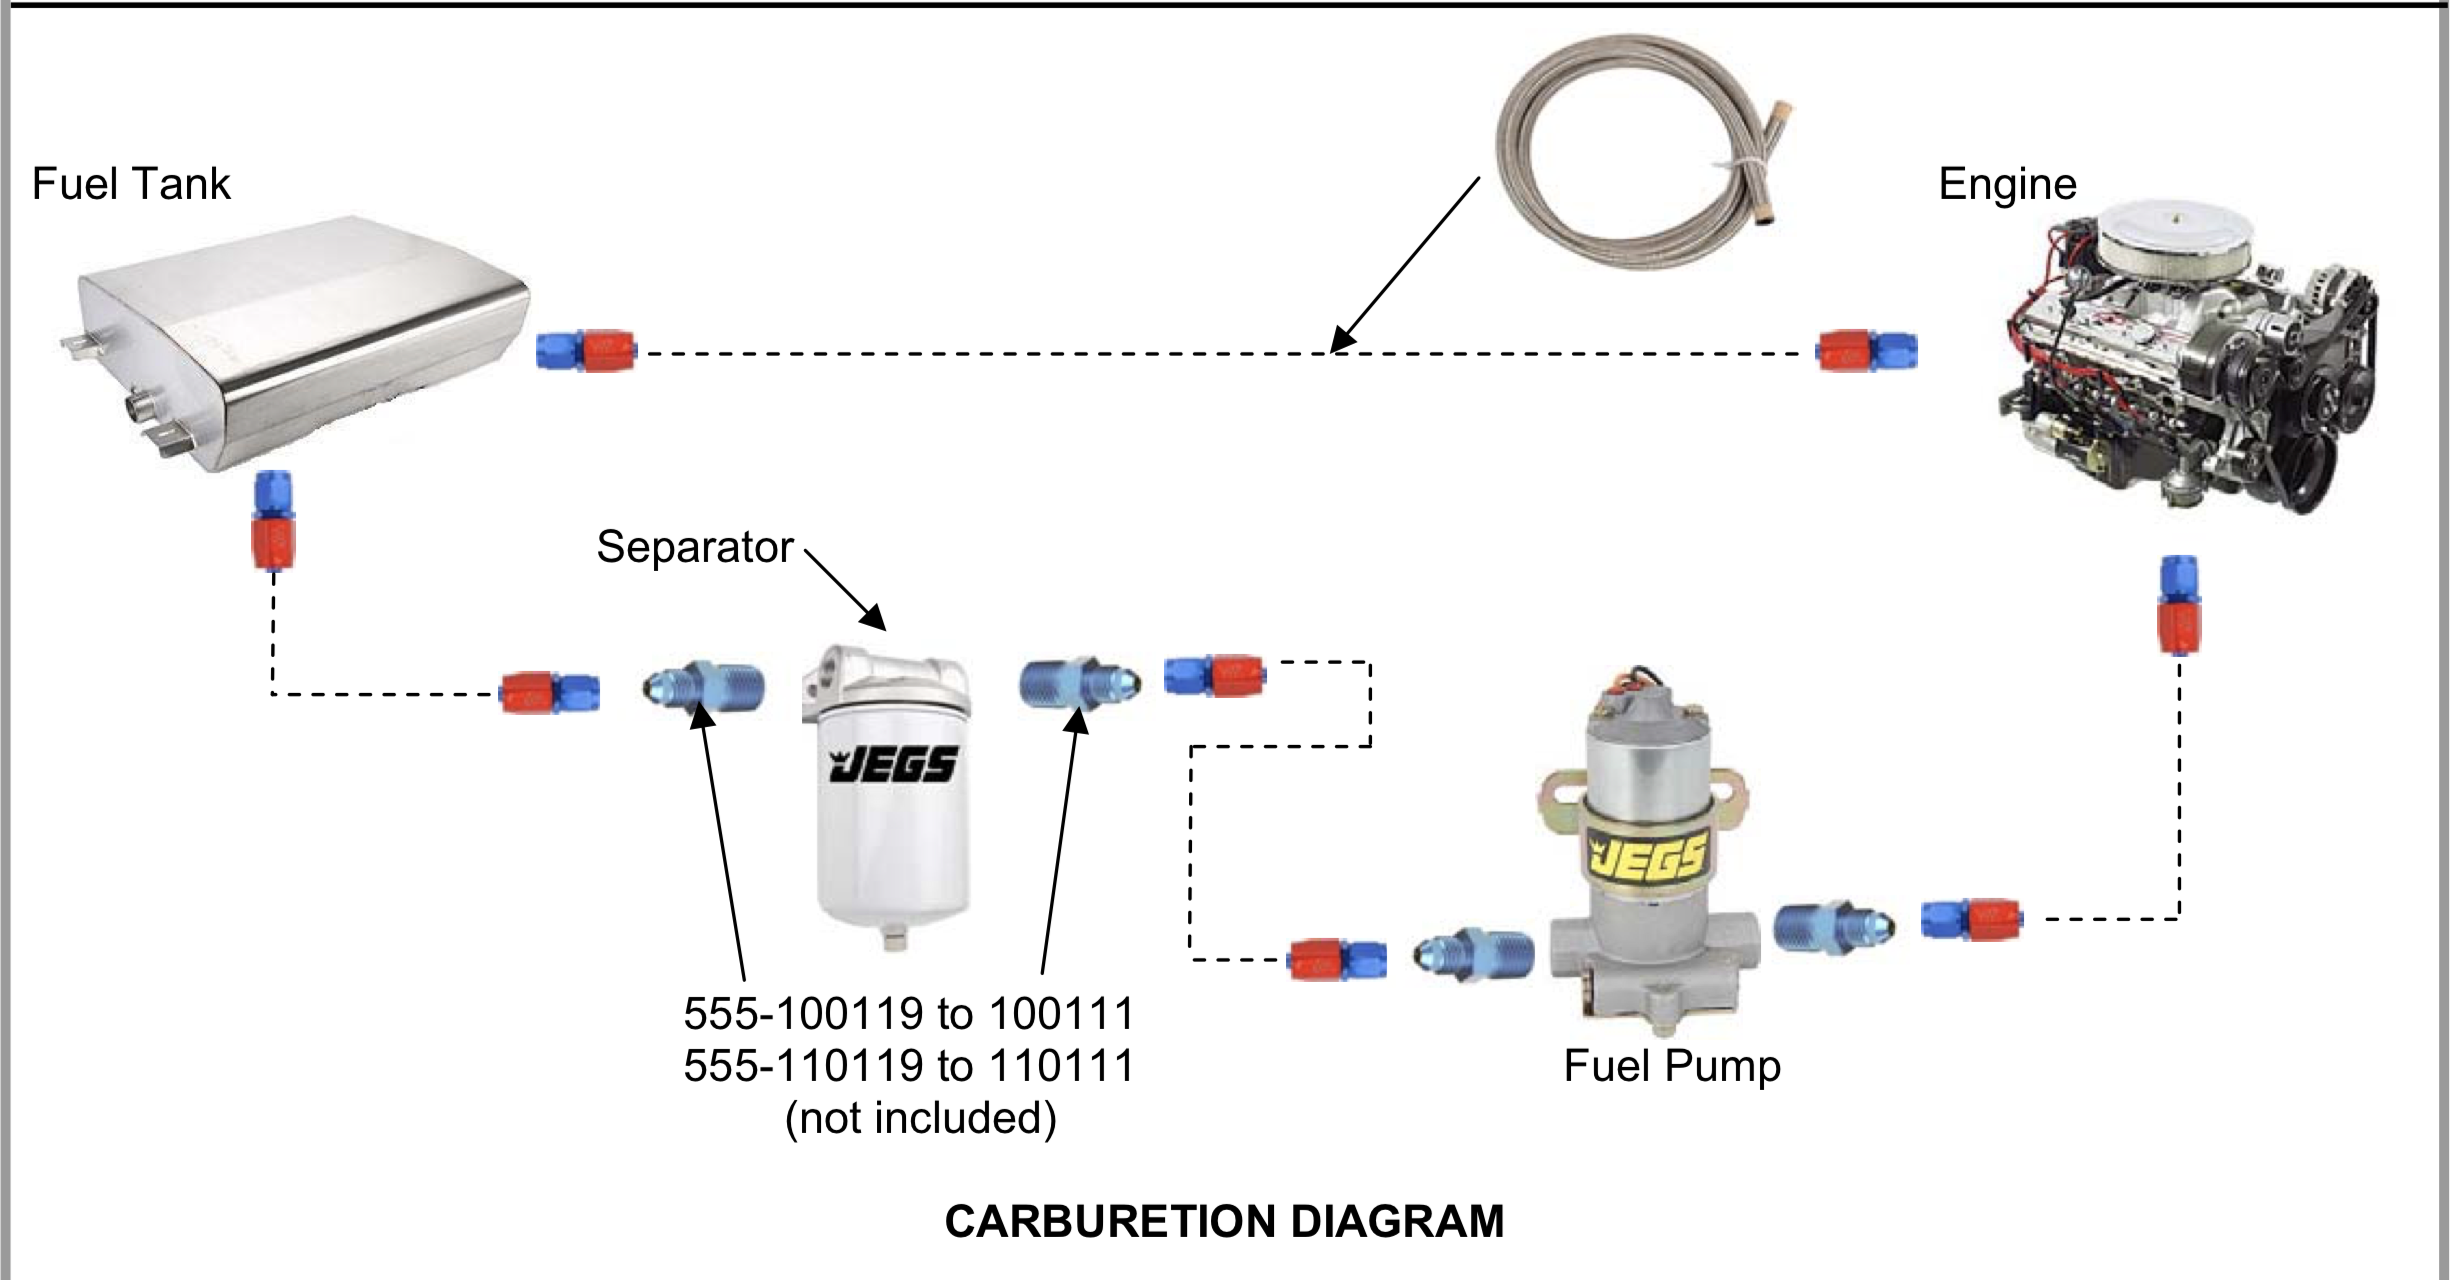 15177 Installation Instructions For Fuel Filter Water Separator In Line Filters Enough Room Removal And Replacement Of The Element As Well Draining Apply A Small Amount Clean Oil To Gasket